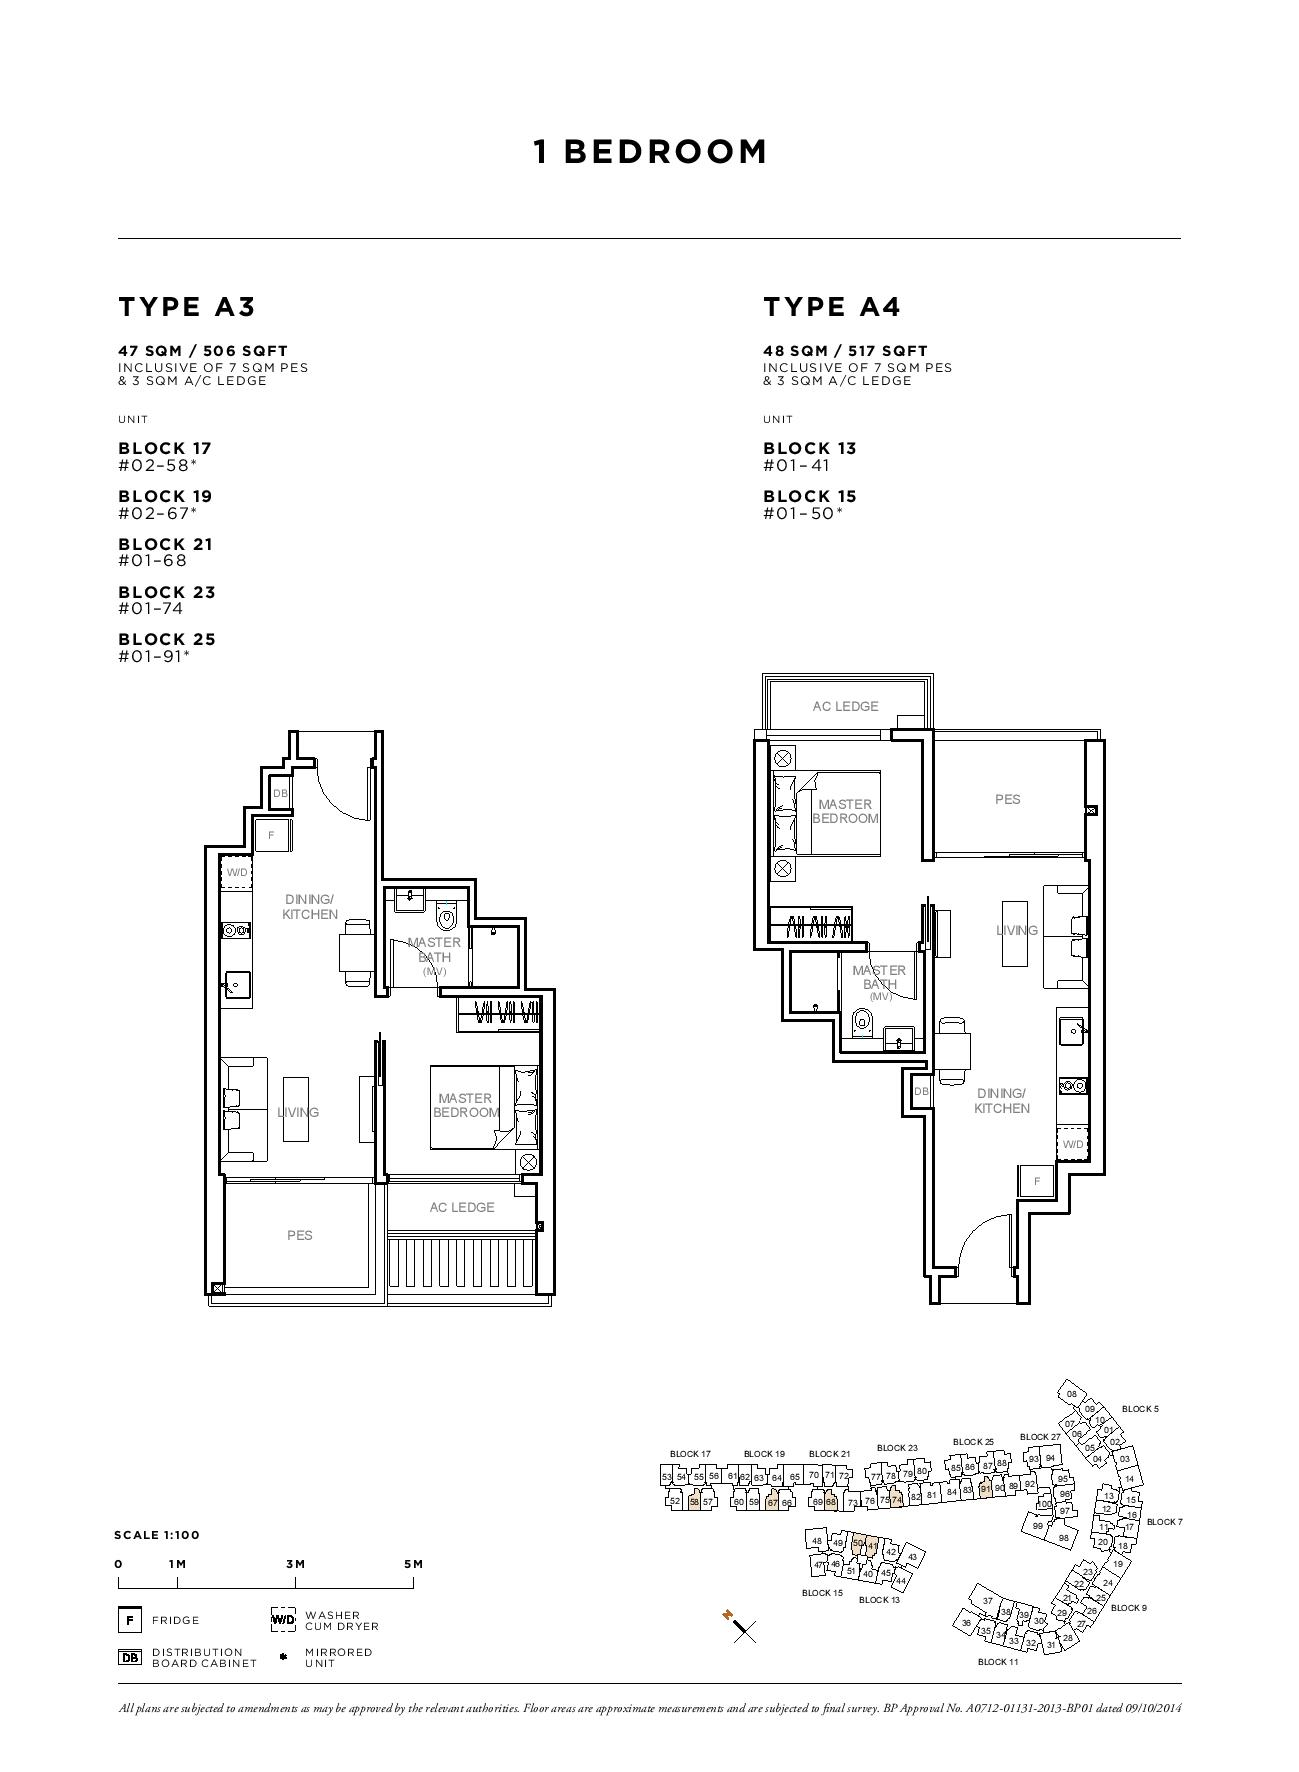 Sophia Hills 1 Bedroom Type A3, A4 Floor Plans